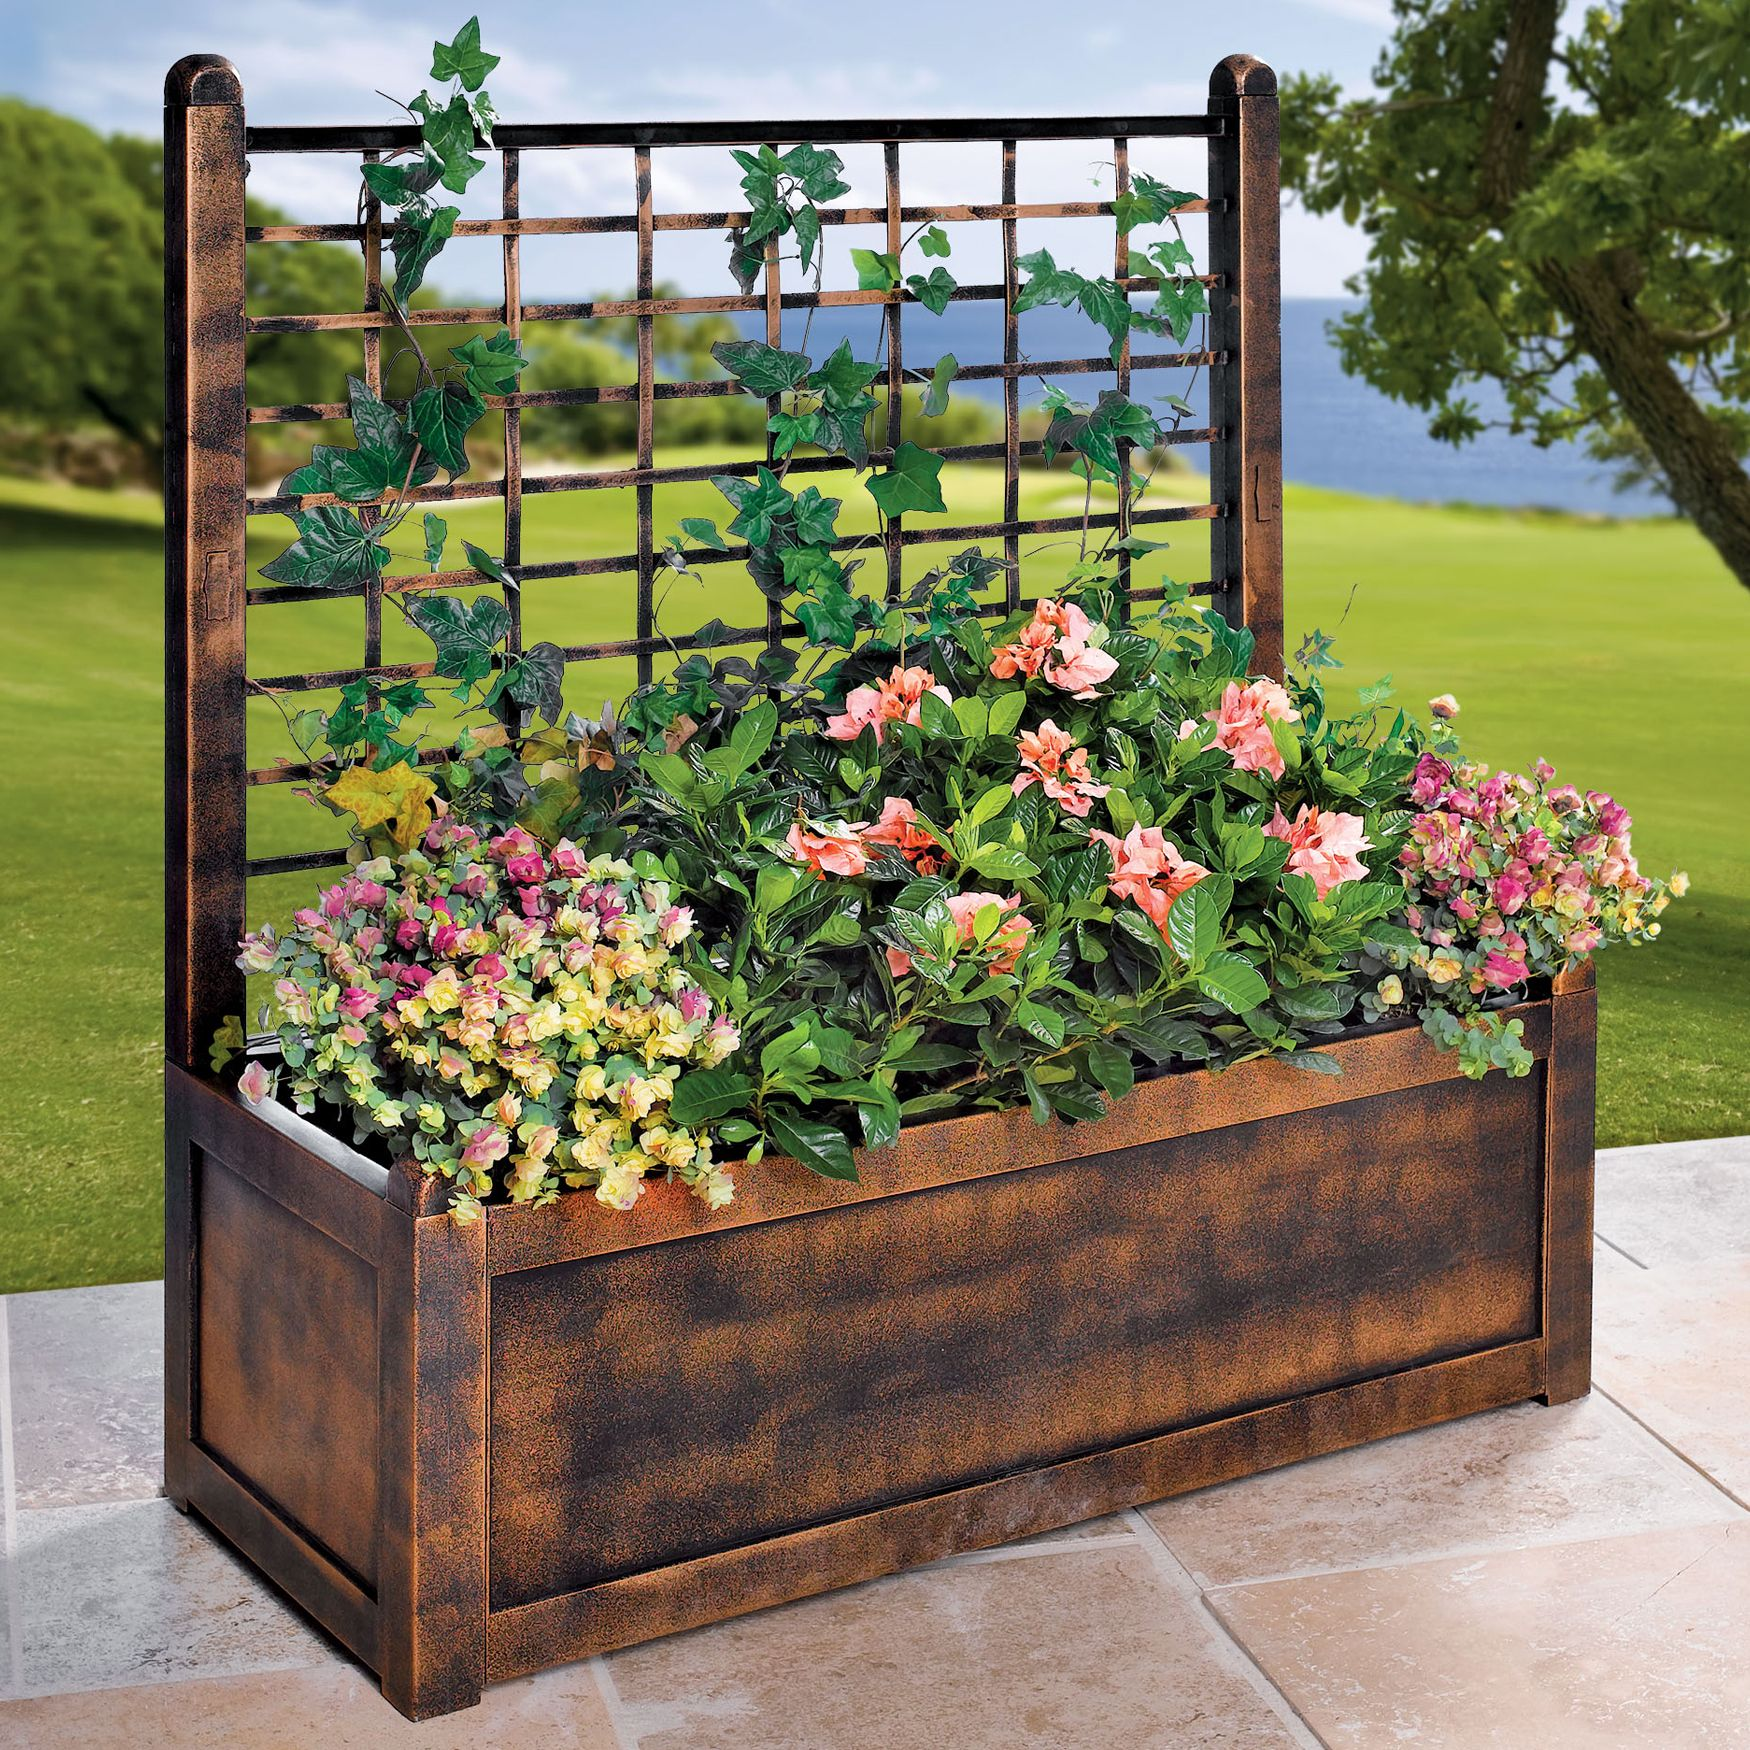 Flower Box With Trellis Planter Box With Trellis Garden Boxes Outdoor Planter Boxes